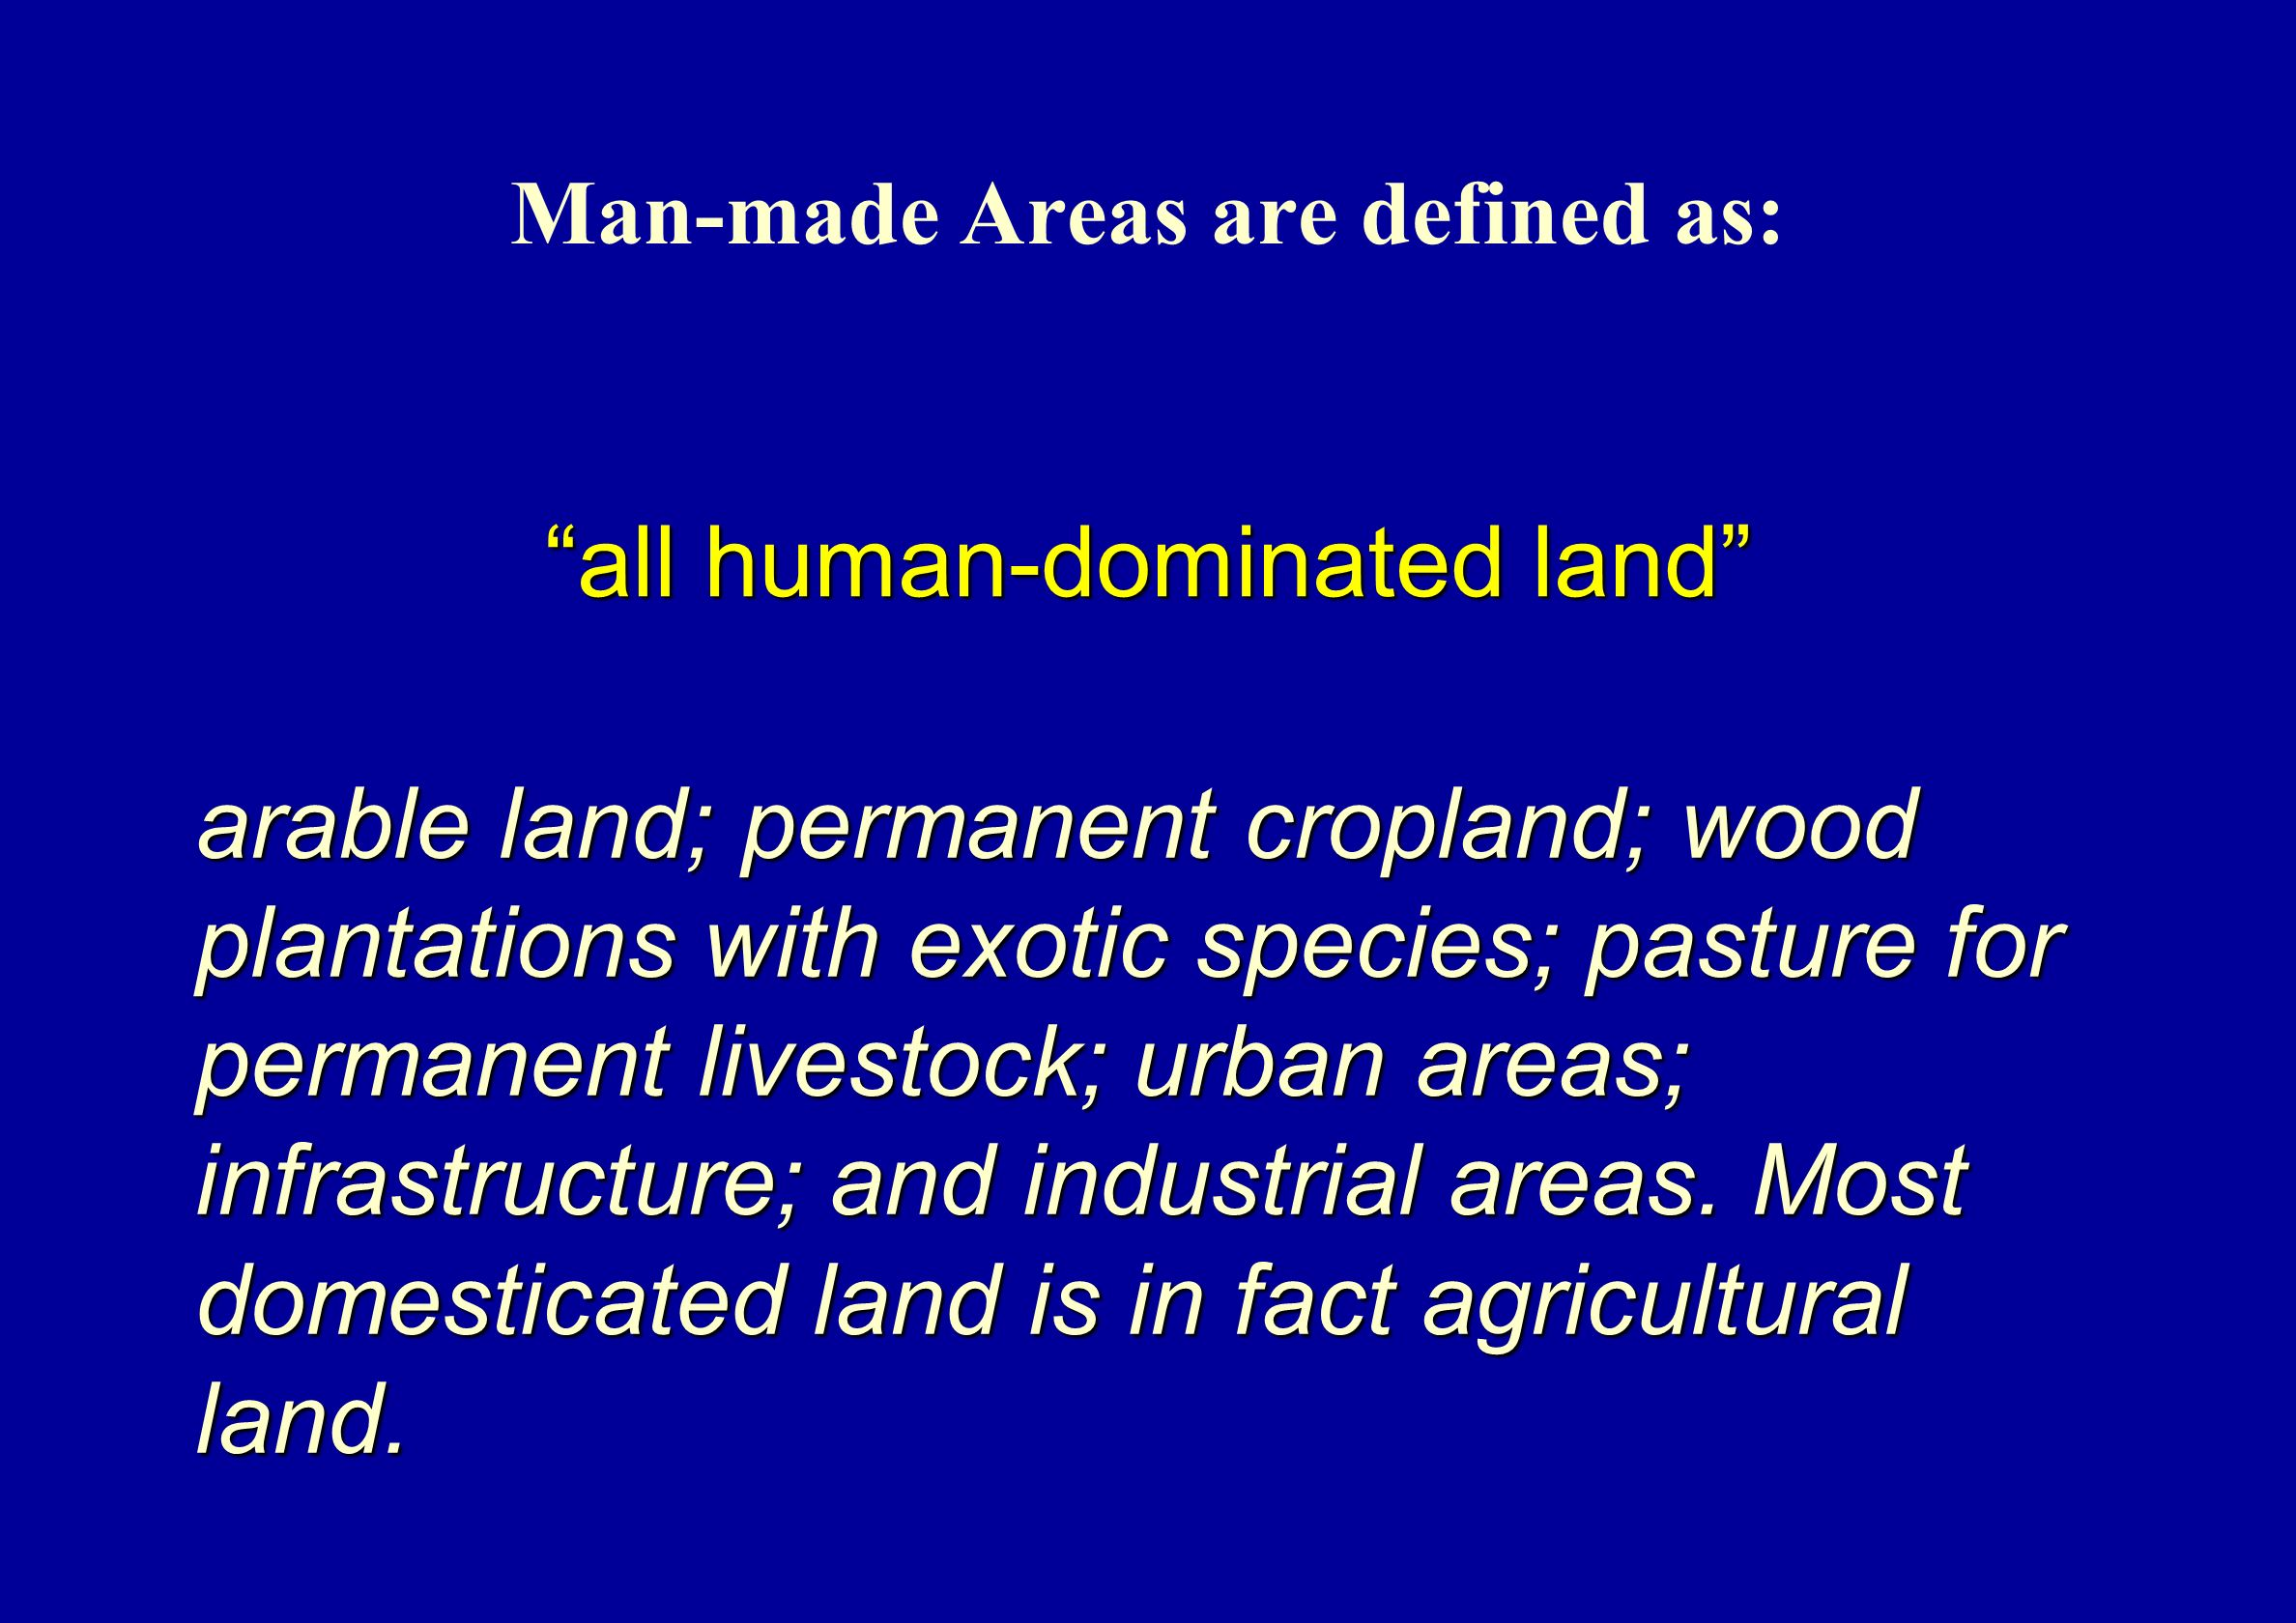 Man-made Areas are defined as: